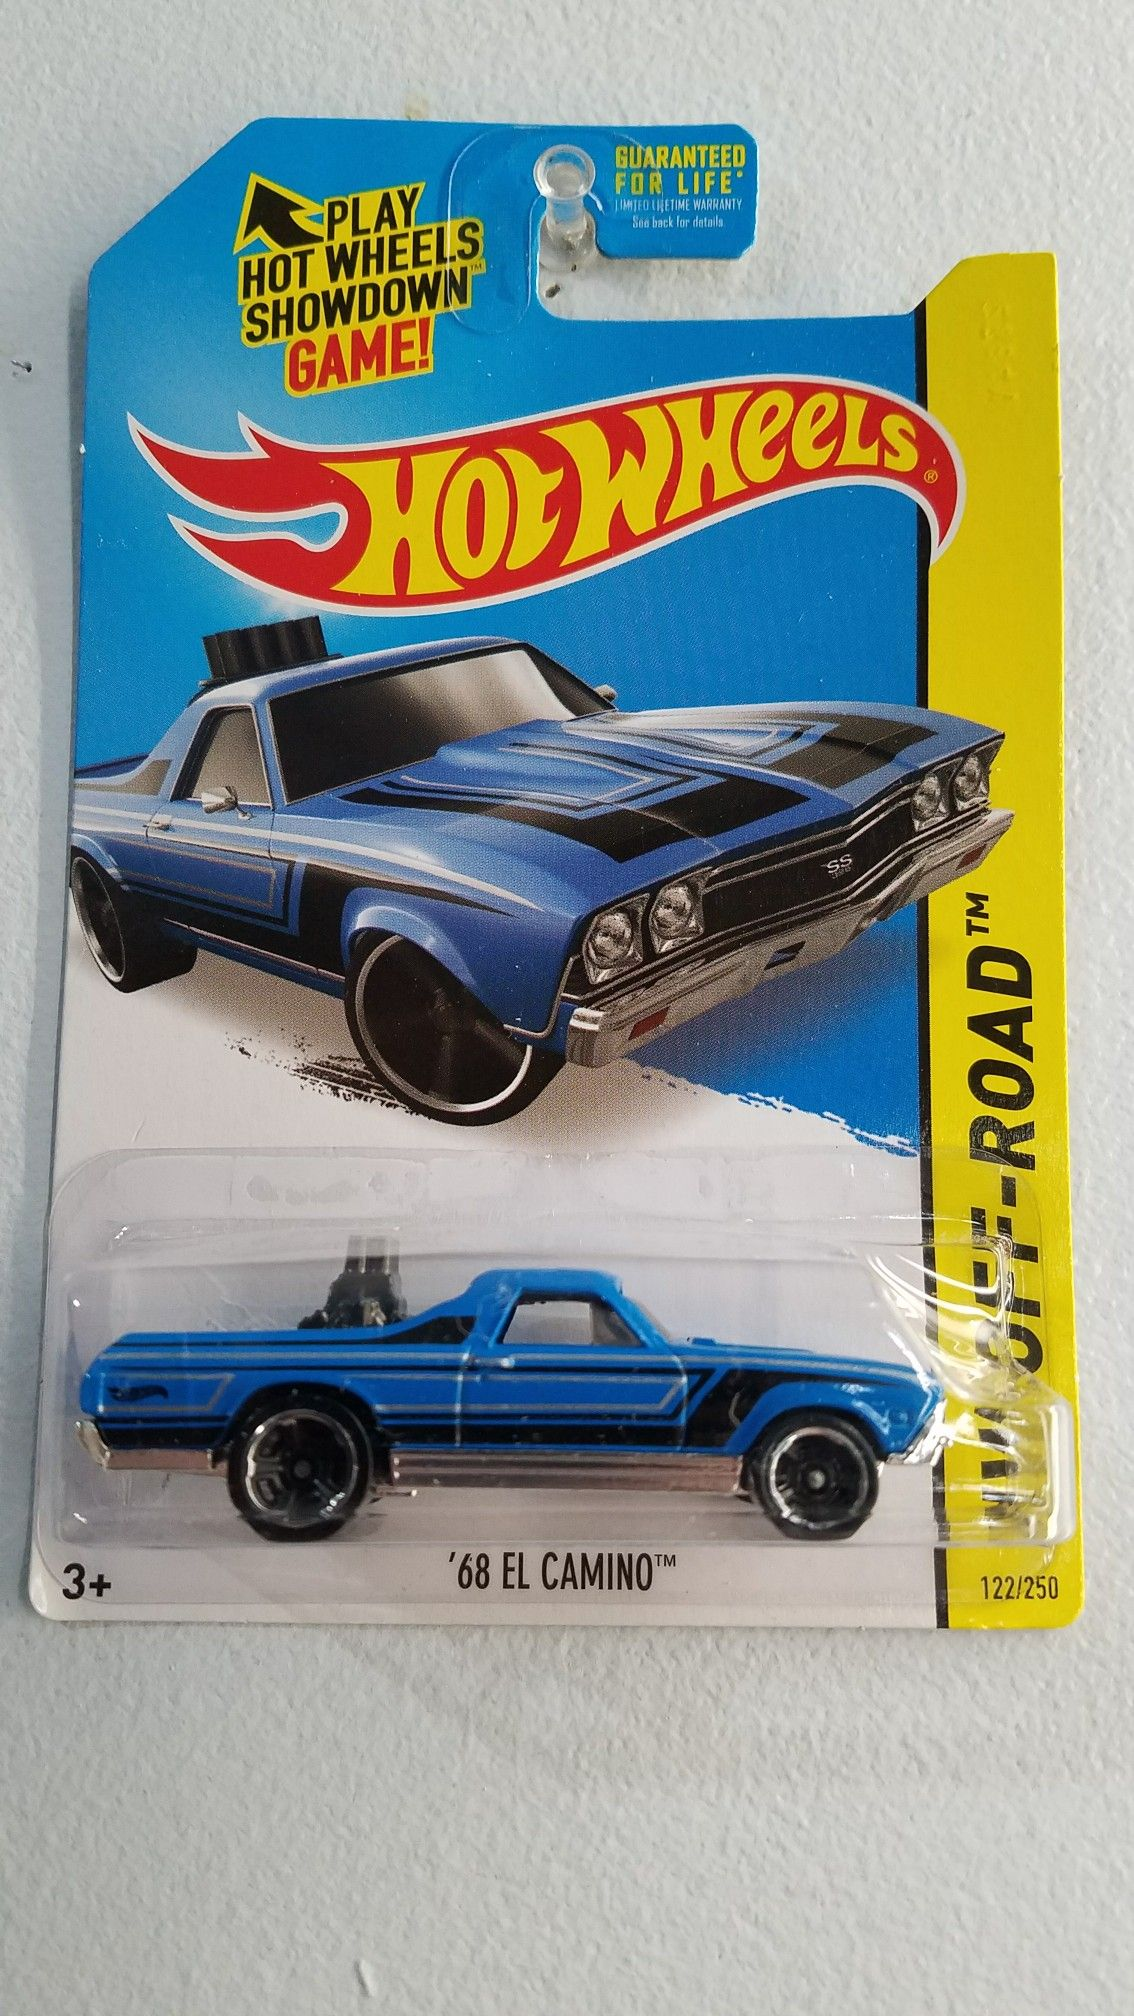 Hot Wheels 1968 El Camino